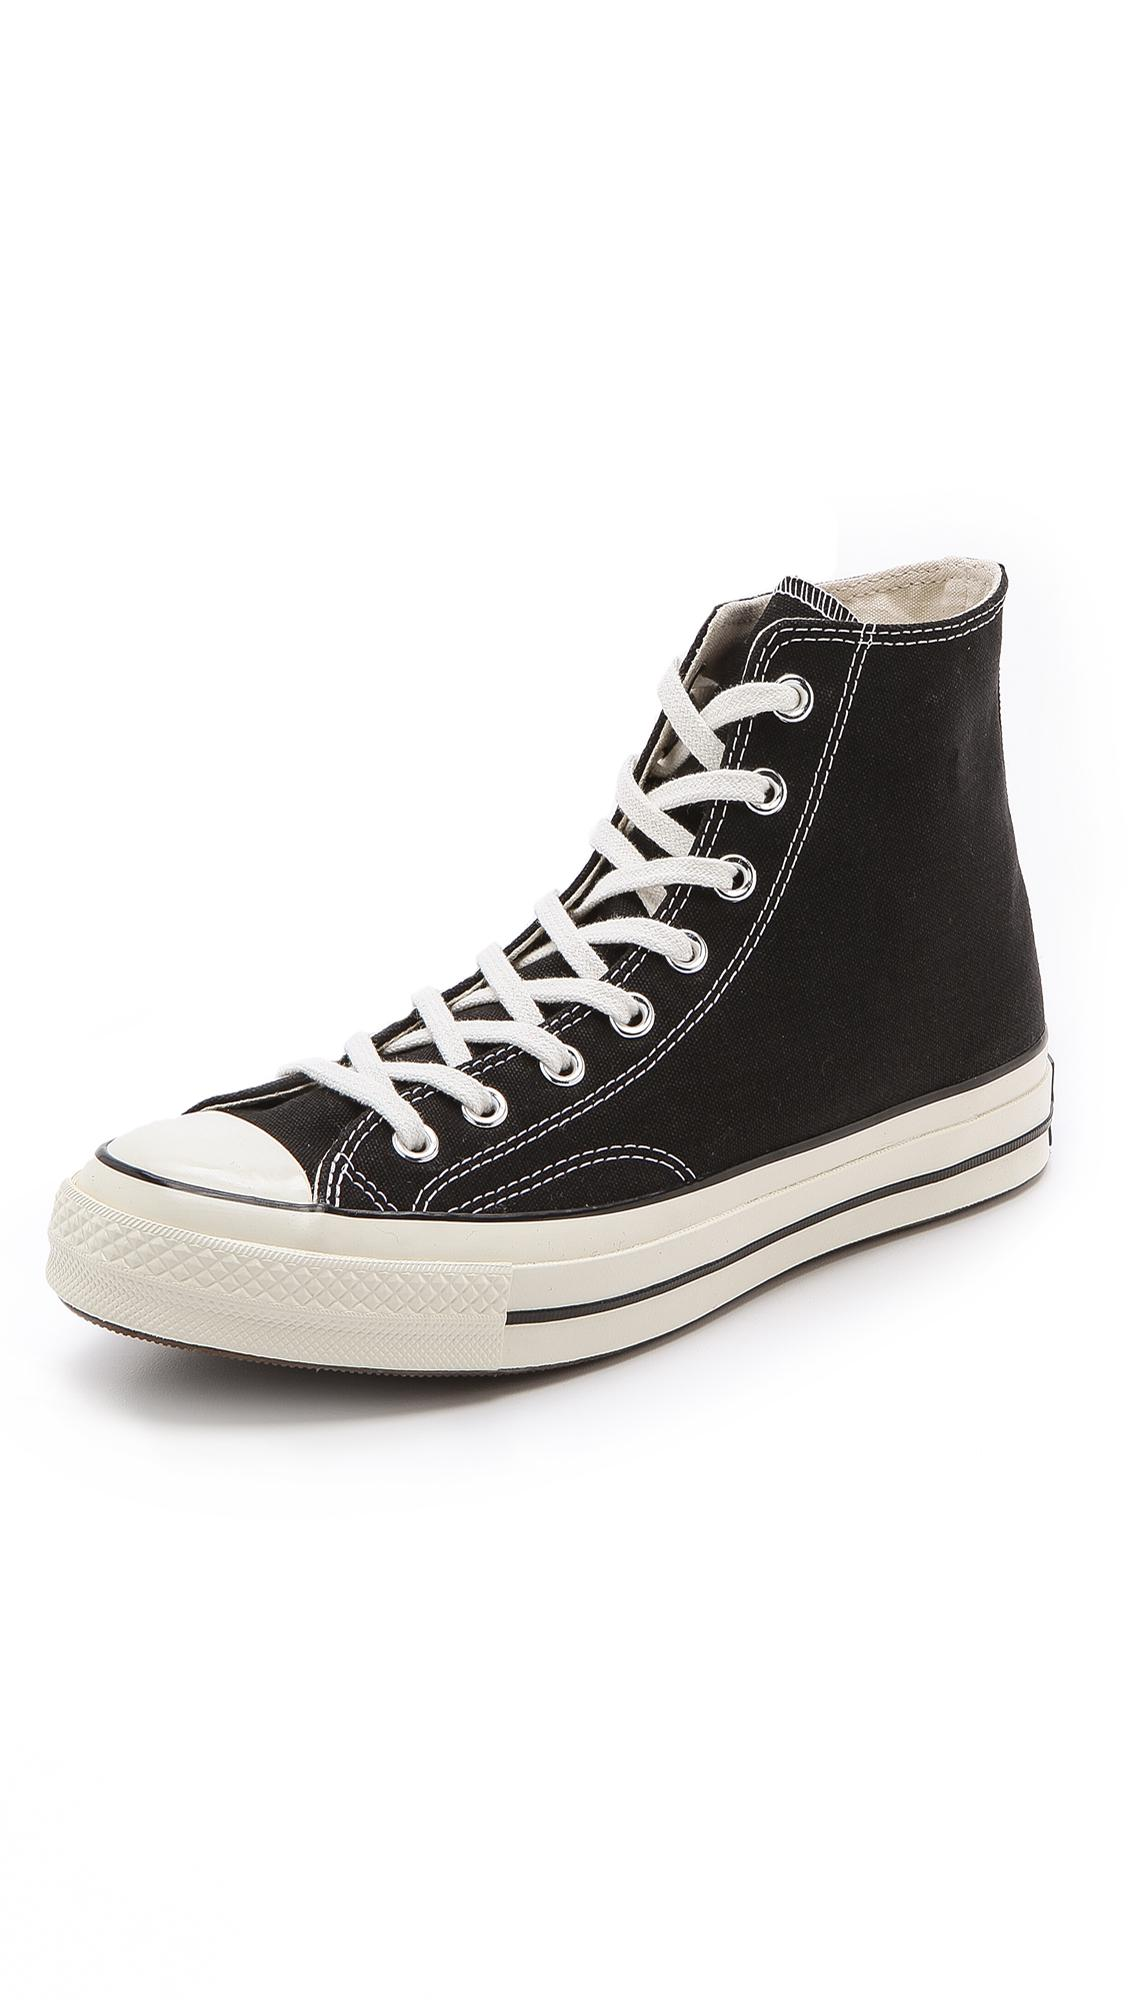 86160dffe4c2 Lyst - Converse Chuck Taylor All Star  70s High Top Sneakers in ...